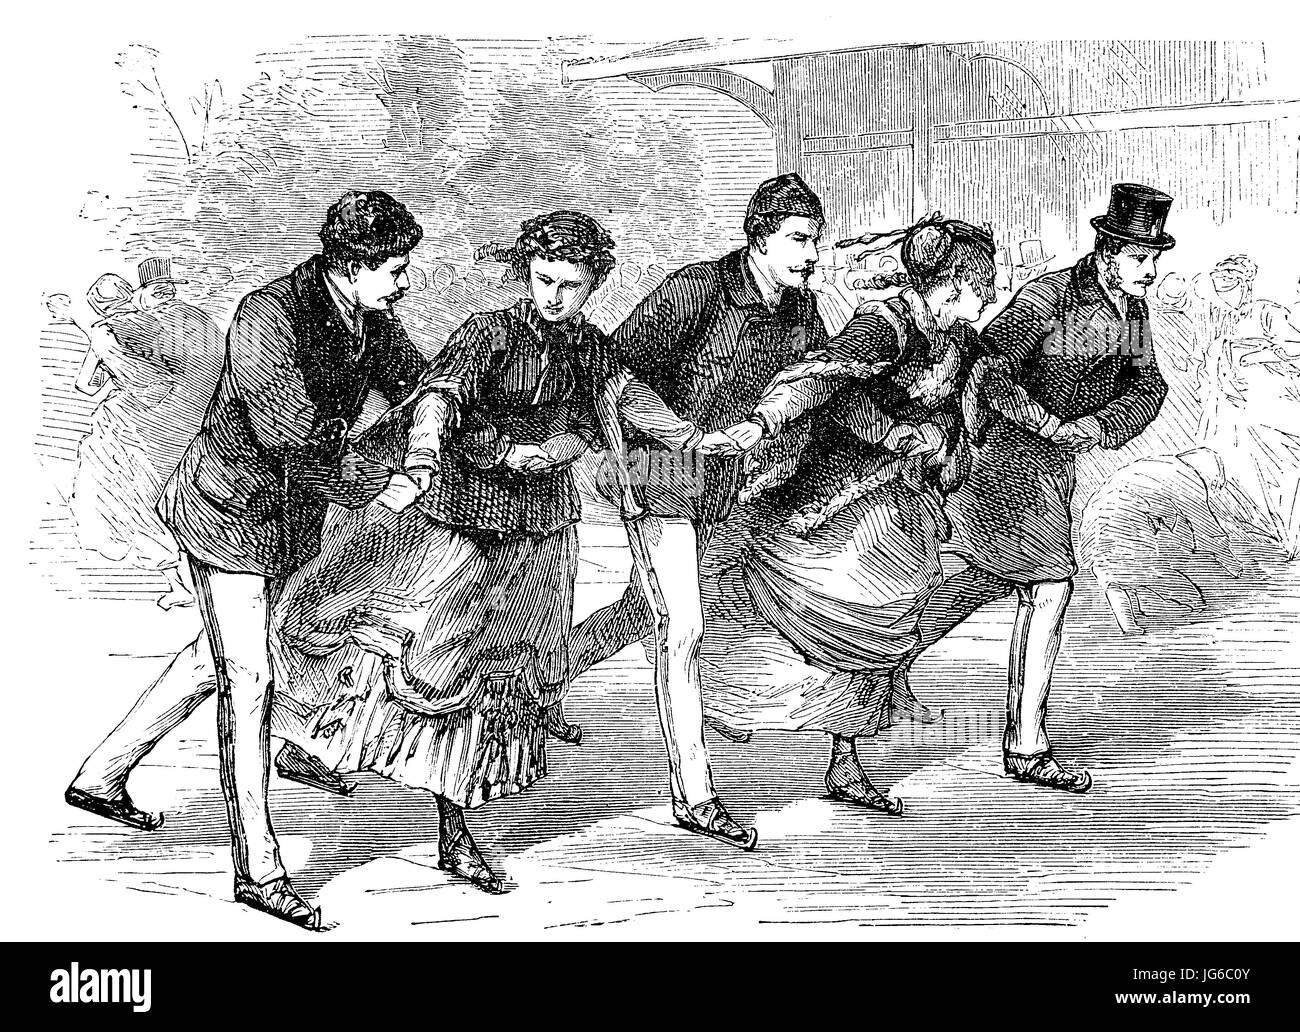 Digital improved:, five people Ice skating, ice skating as winter fun, illustration from the 19th century Stock Photo